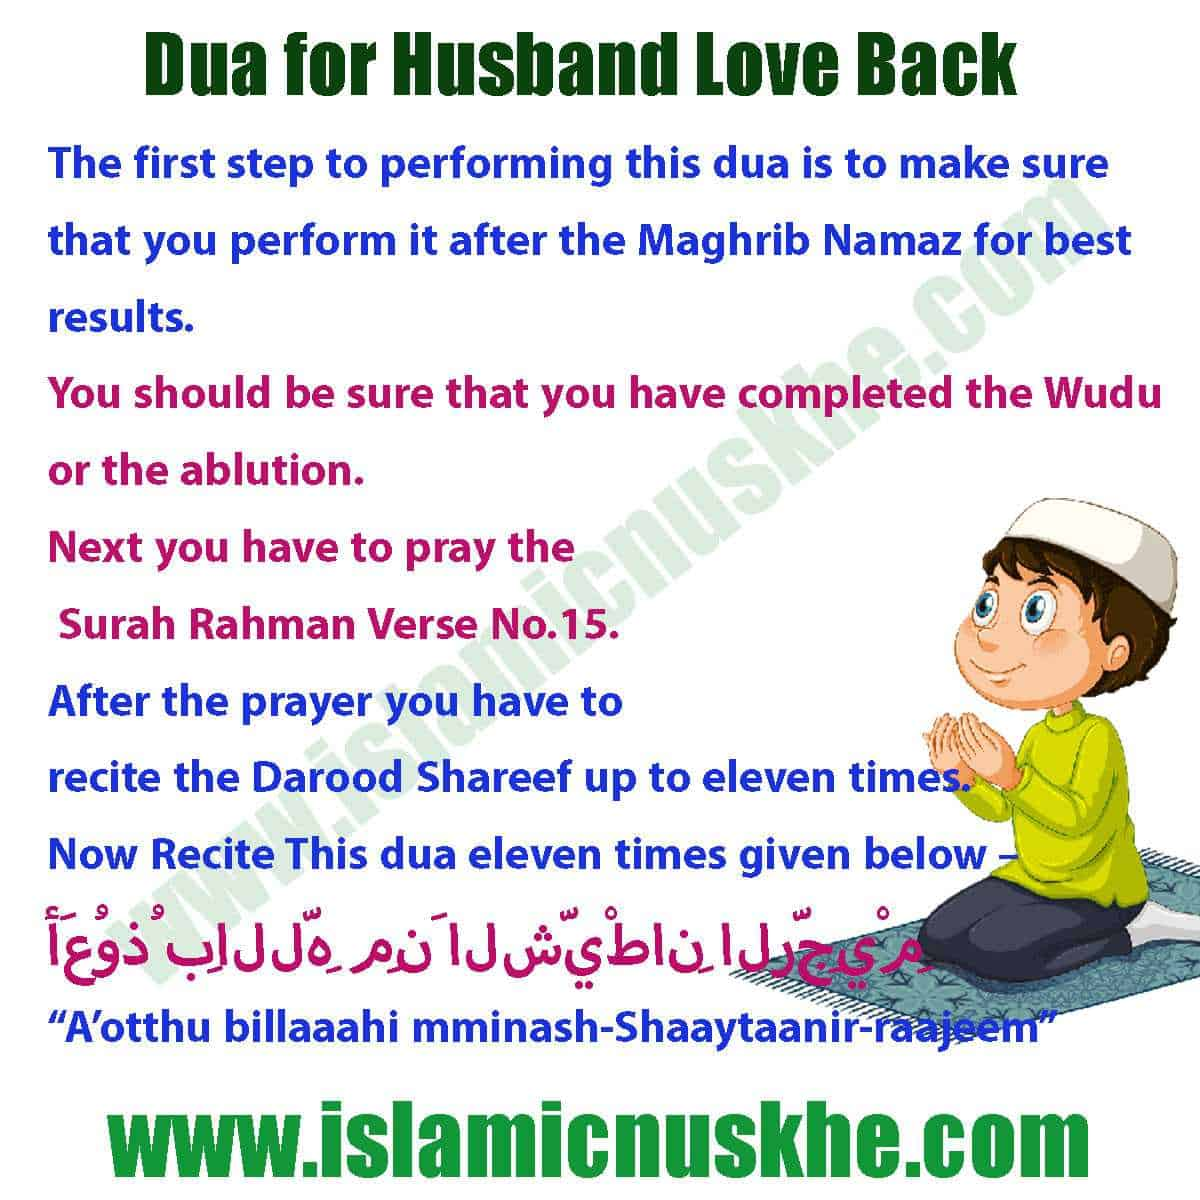 Here is Procedure to Perform Dua for Husband Love Back Step by Step -